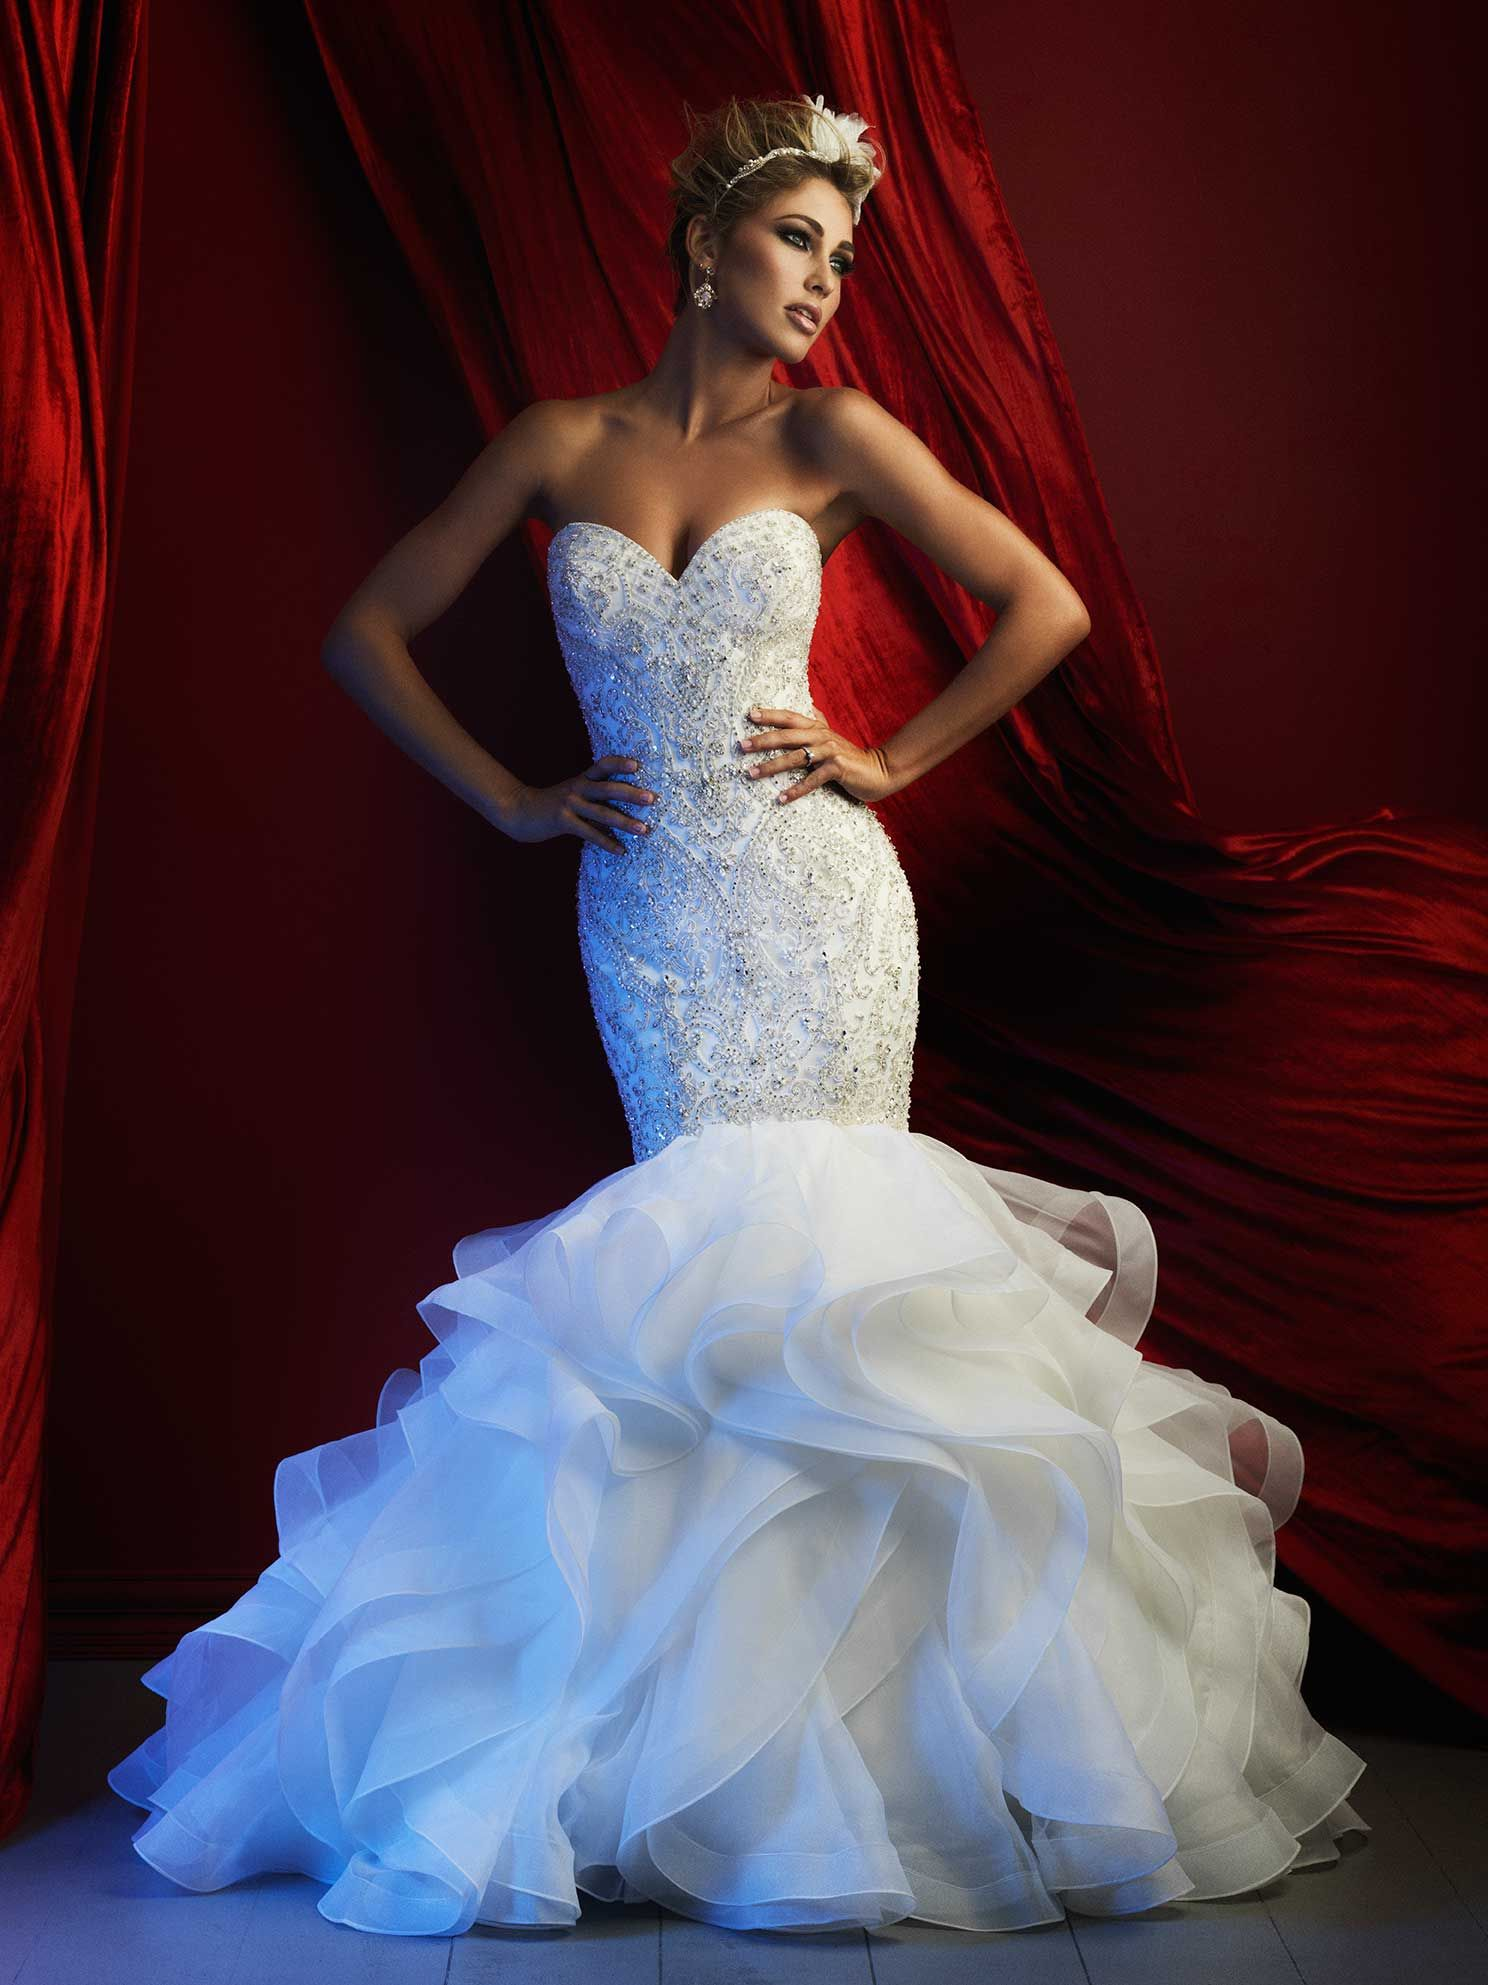 Allure couture c367 spring 2016 allure couture pinterest wedding dresses bridesmaid dresses prom dresses and bridal dresses allure couture wedding dresses style allure couture wedding dresses statuesque and ombrellifo Images